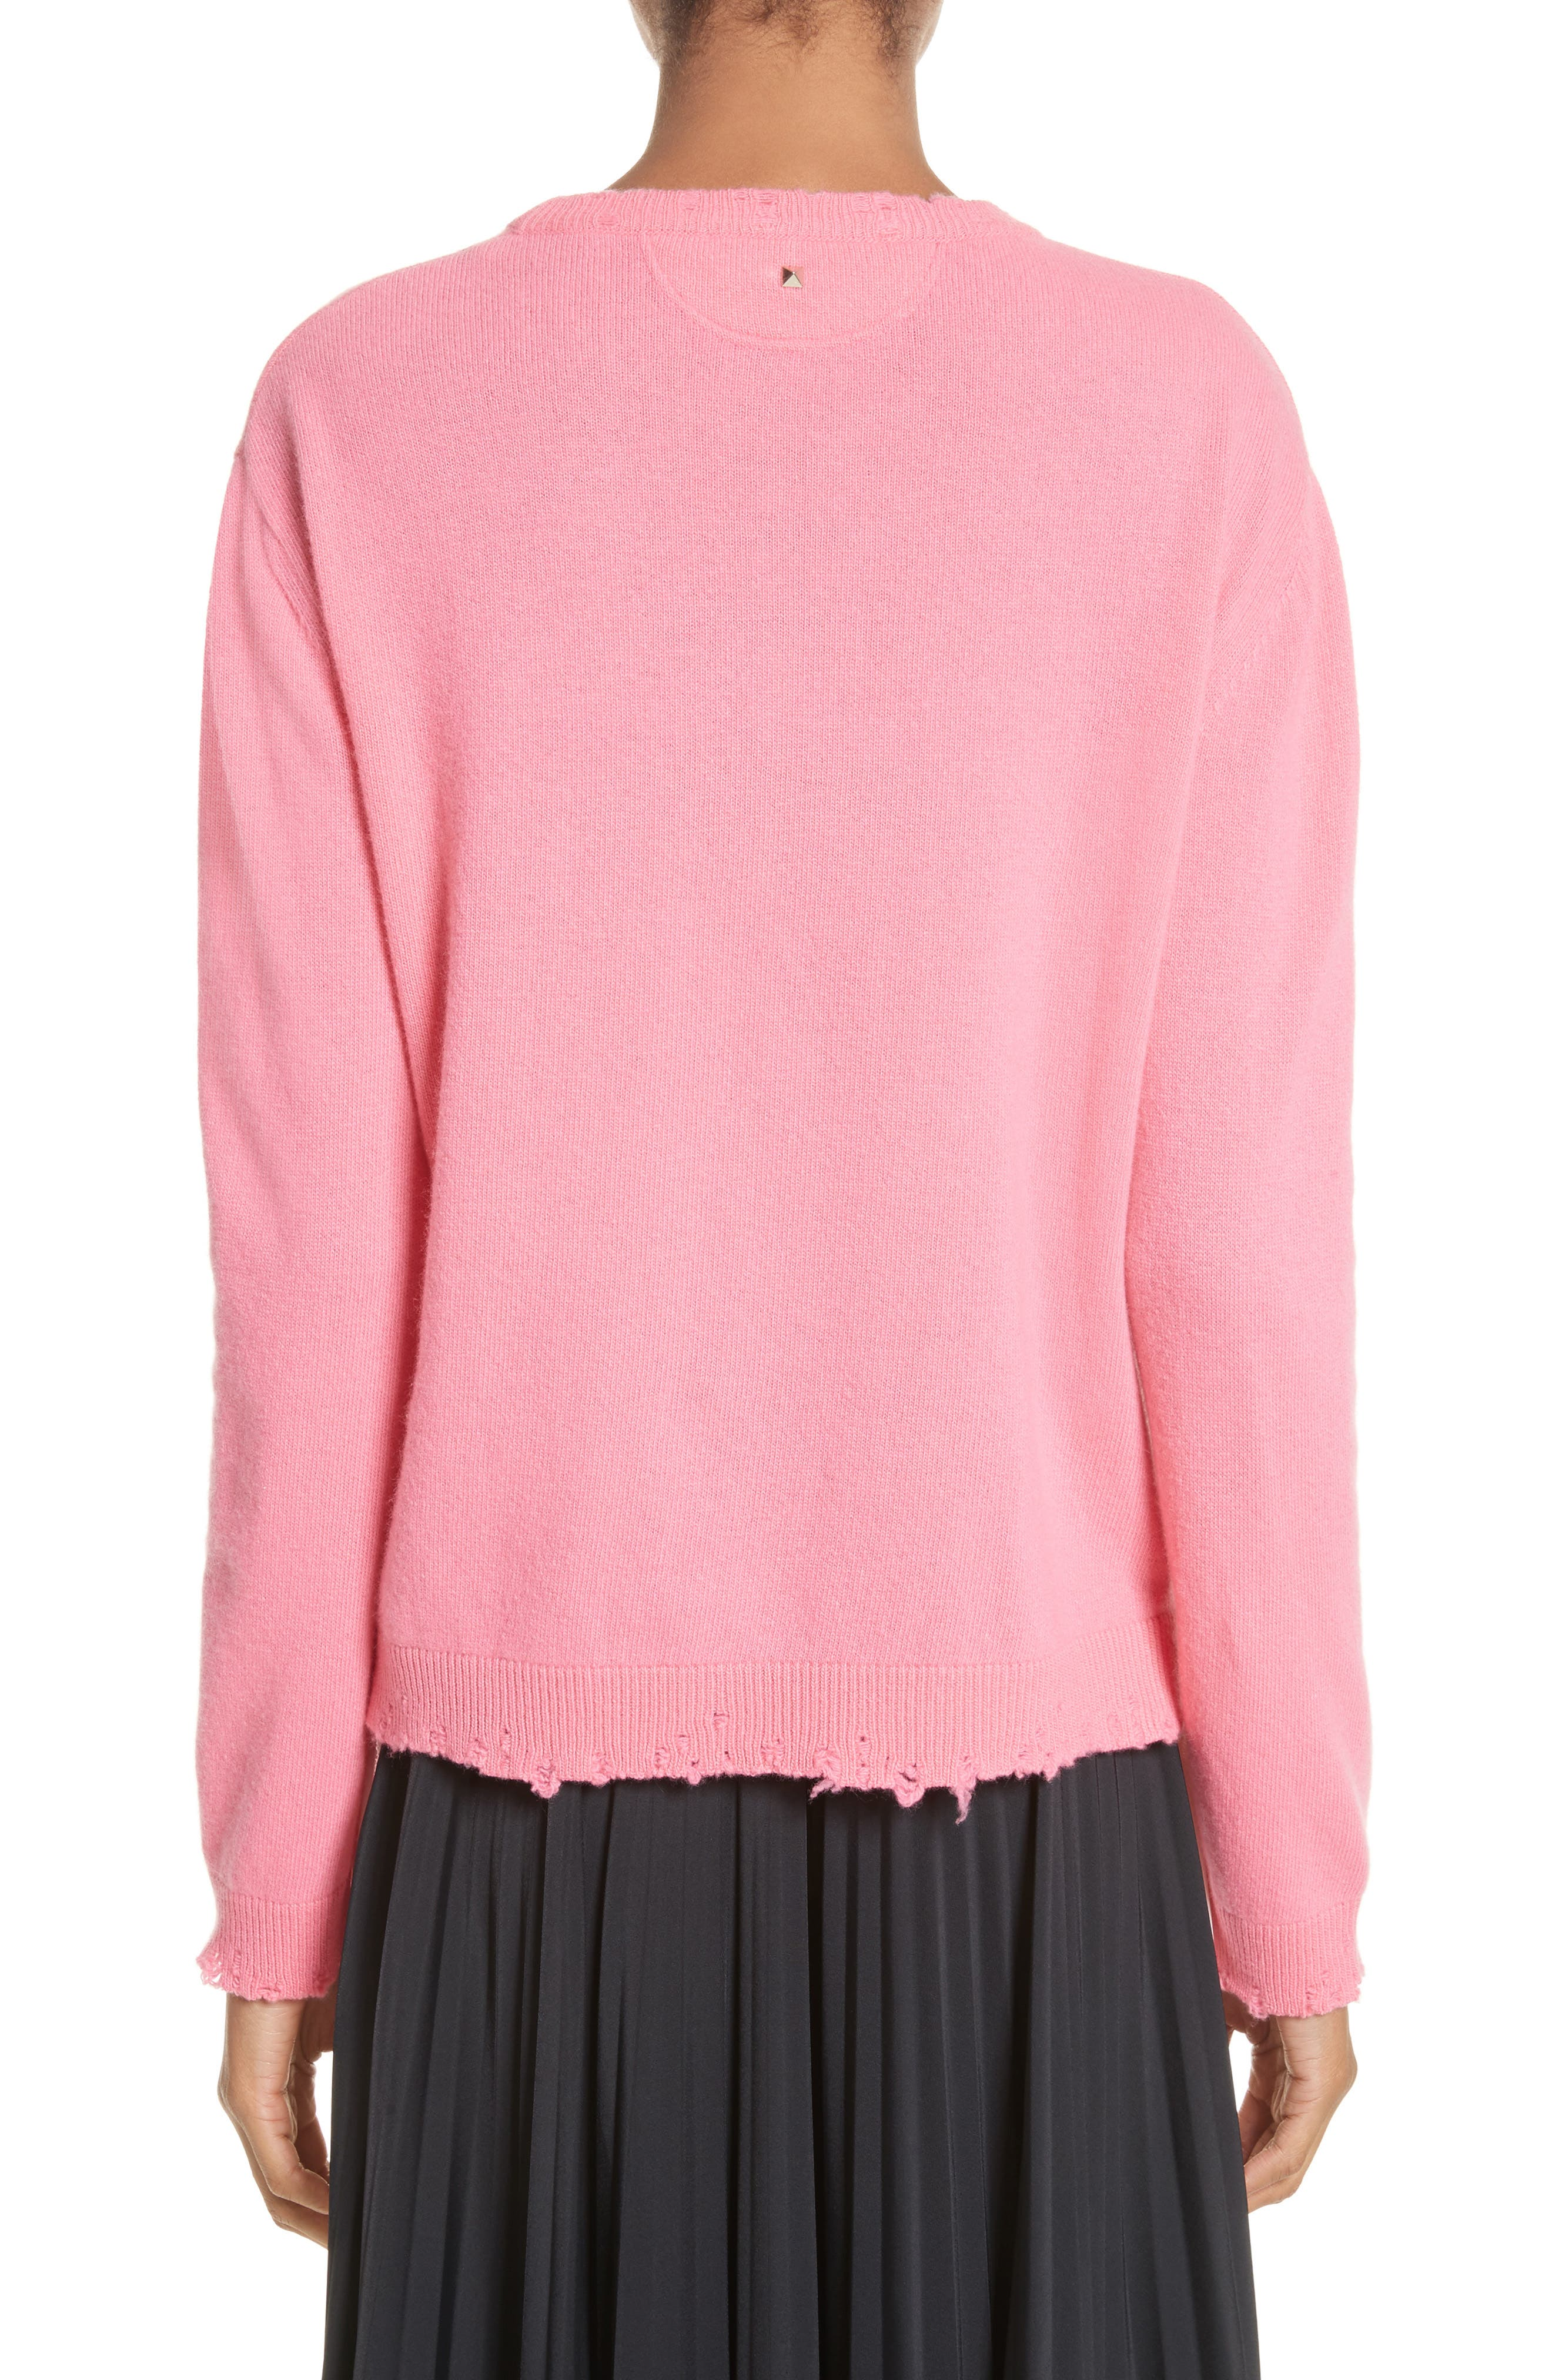 Pink Is Punk Wool & Cashmere Sweater,                             Alternate thumbnail 2, color,                             664